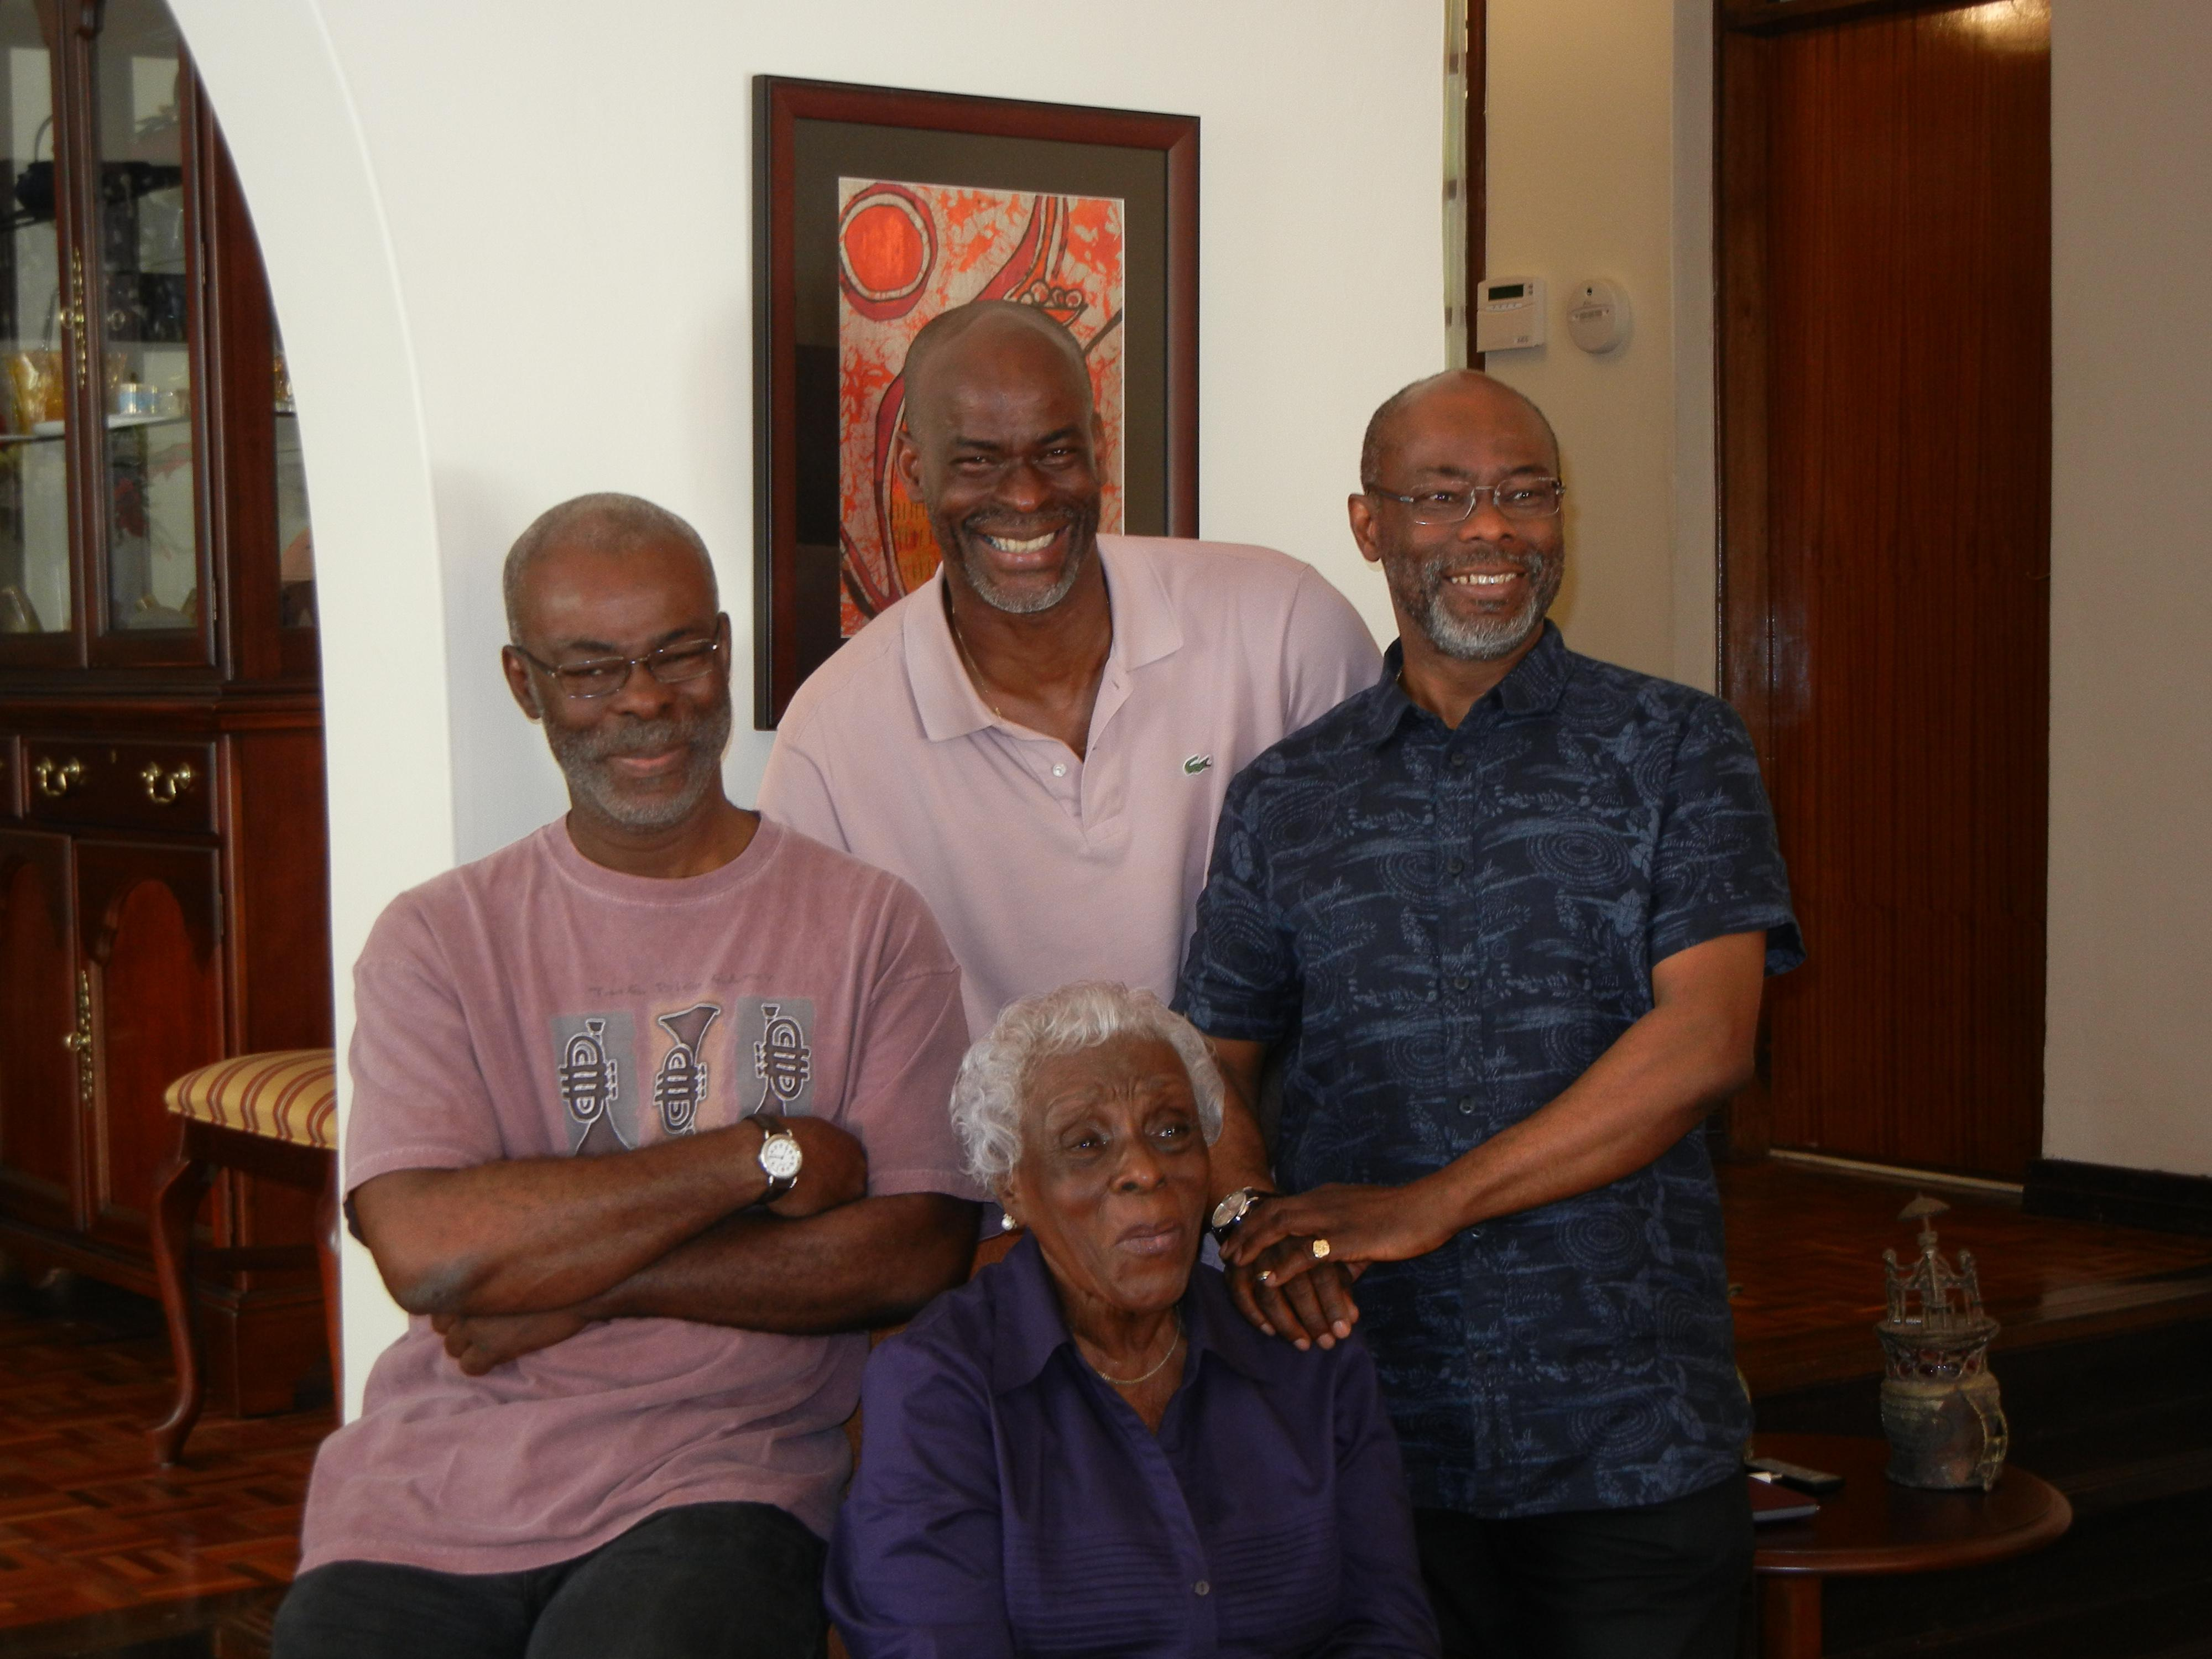 A family portrait - Jide, Richard and Rodney Adeniyi-Jones with their mother, the vibrant Olga Miller